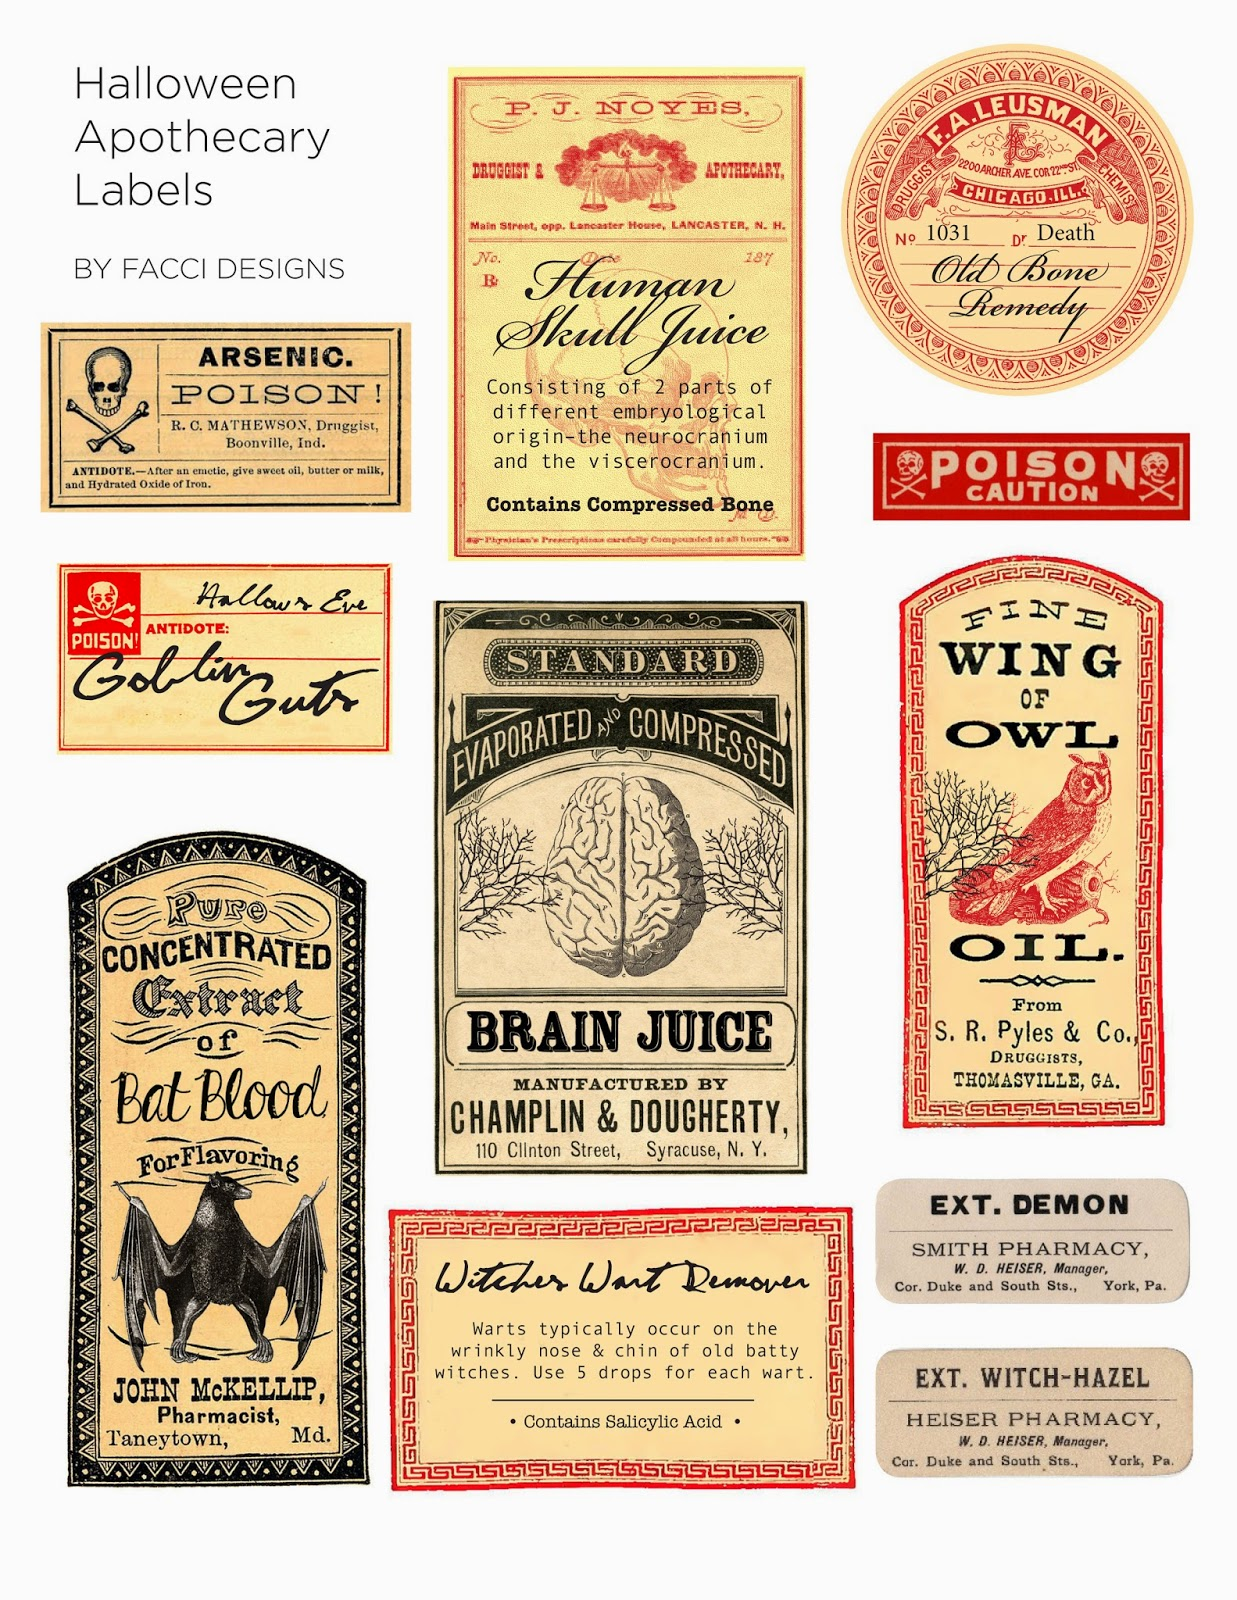 image about Free Printable Vintage Apothecary Labels titled Halloween Appreciate: Spooky Apothecary Labels No cost Printable